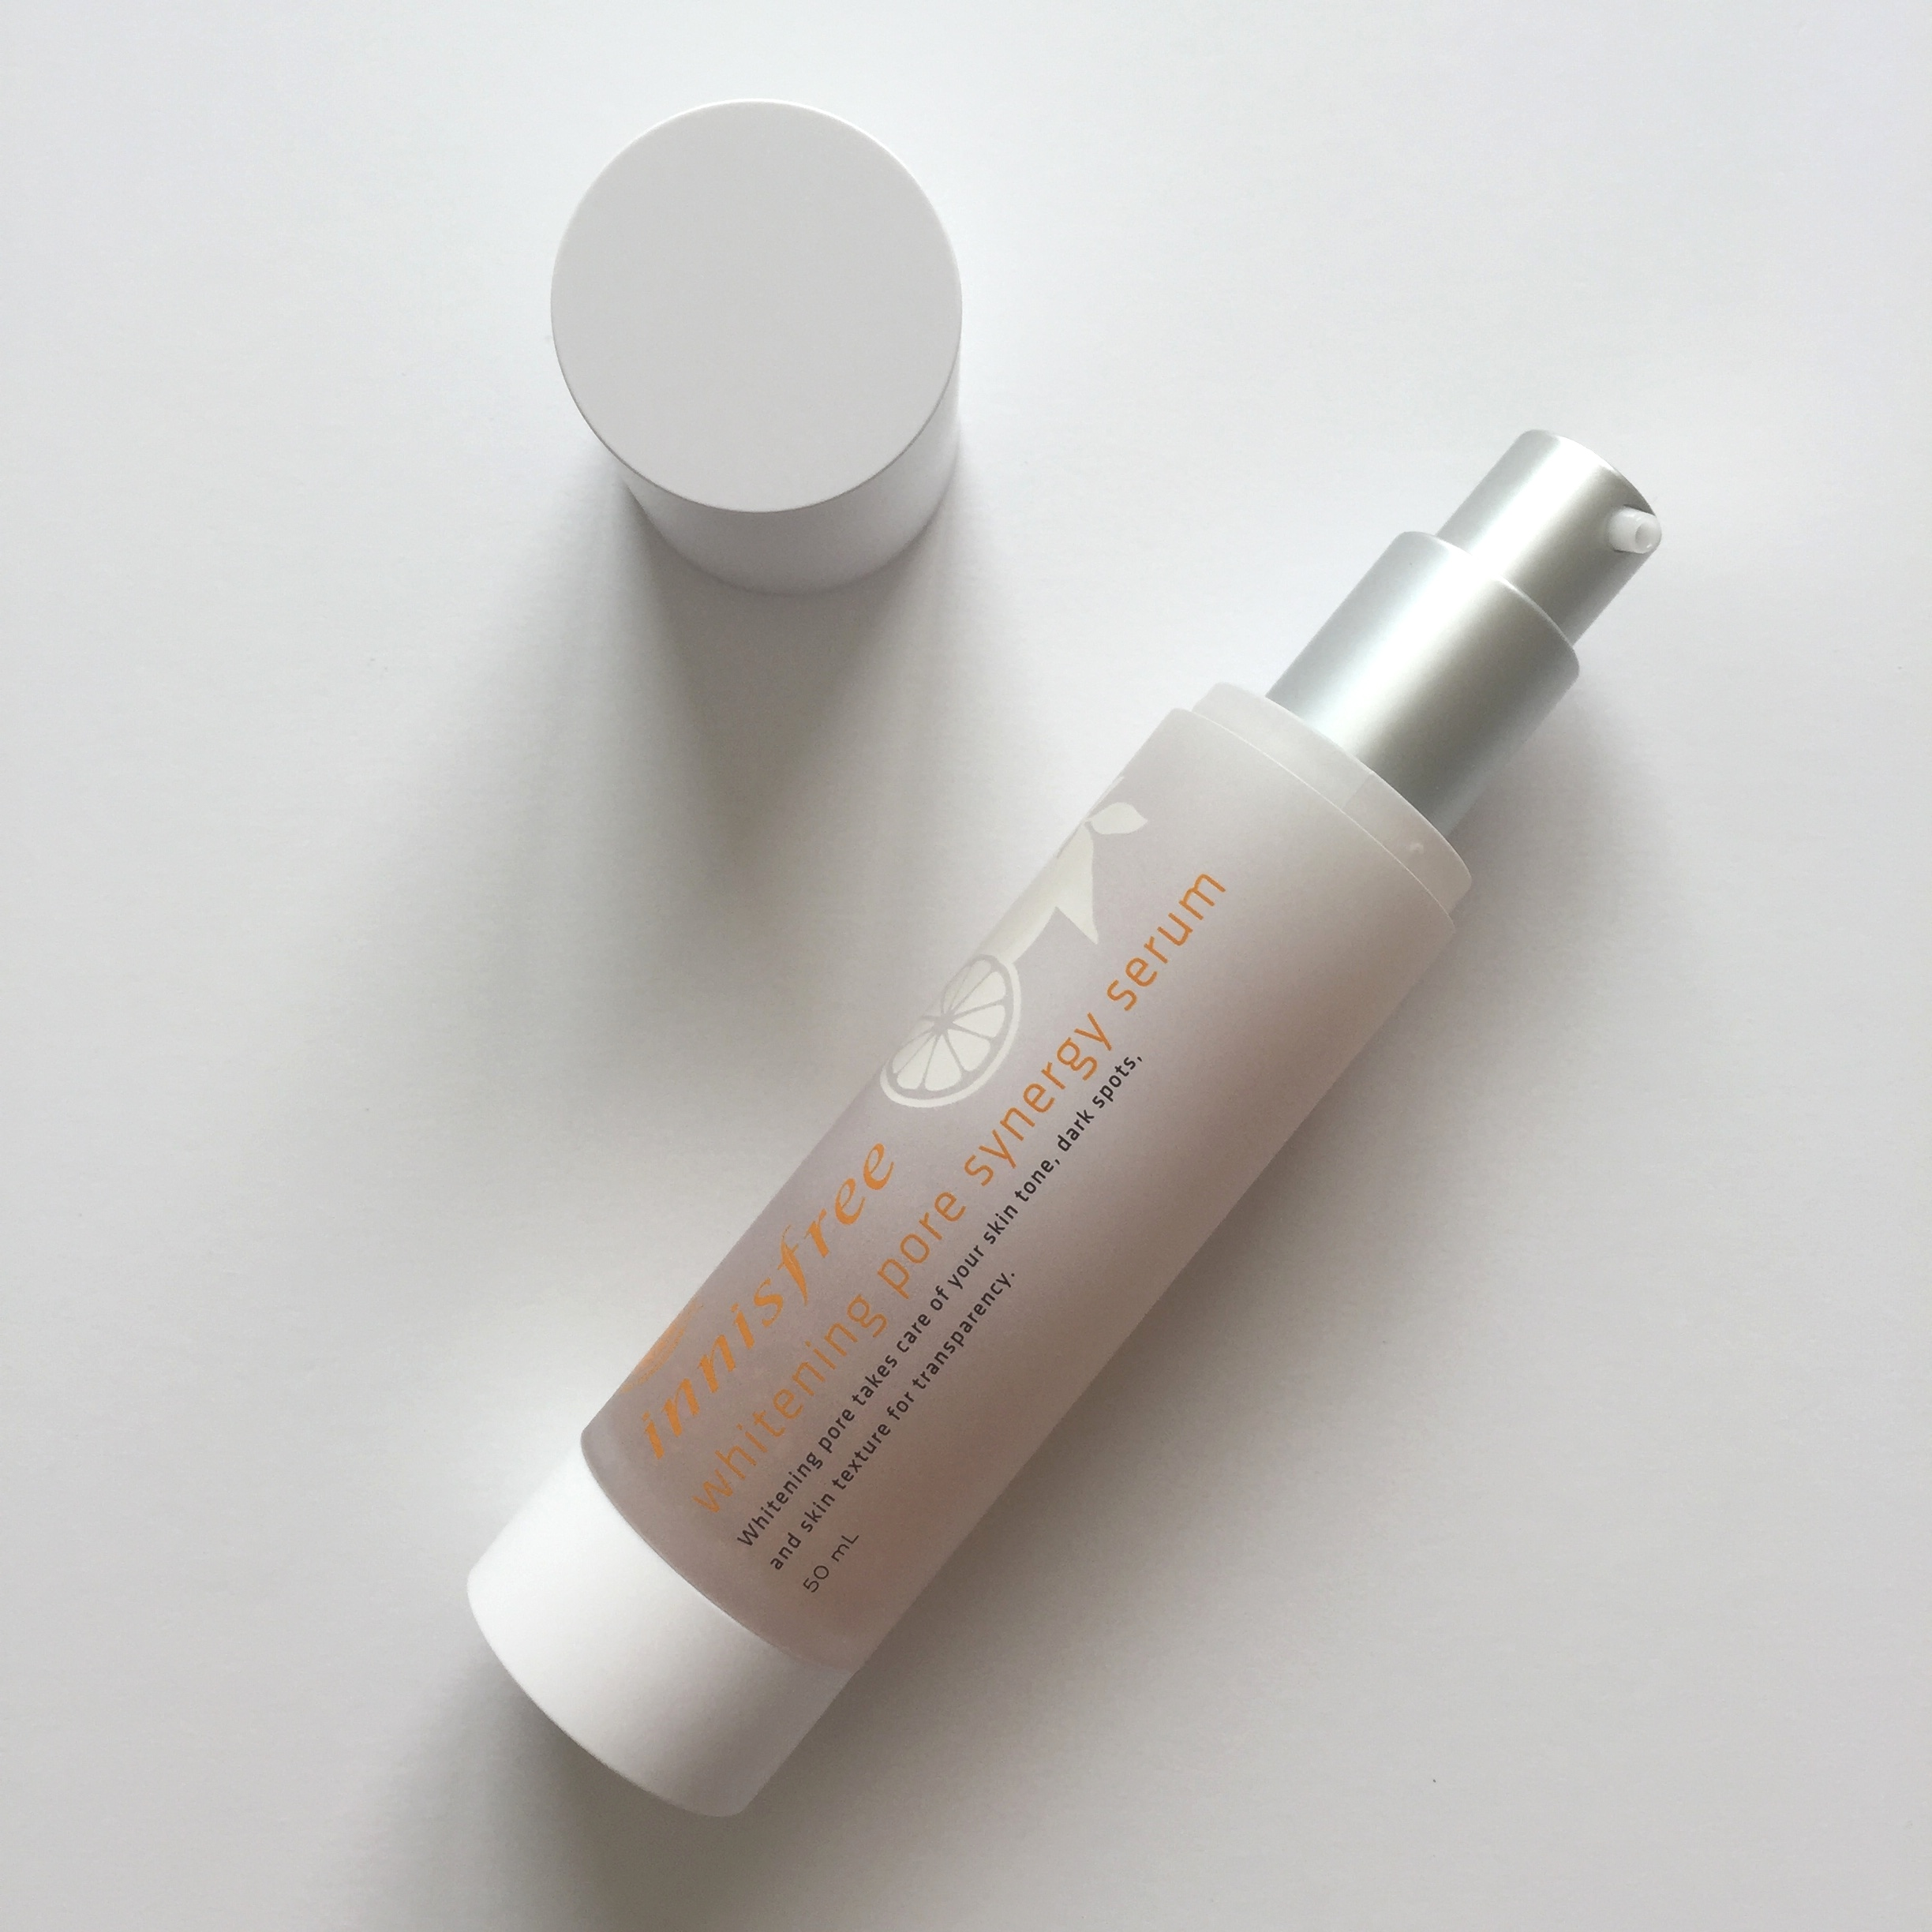 Innisfree Whitening Pore Synergy Serum Review